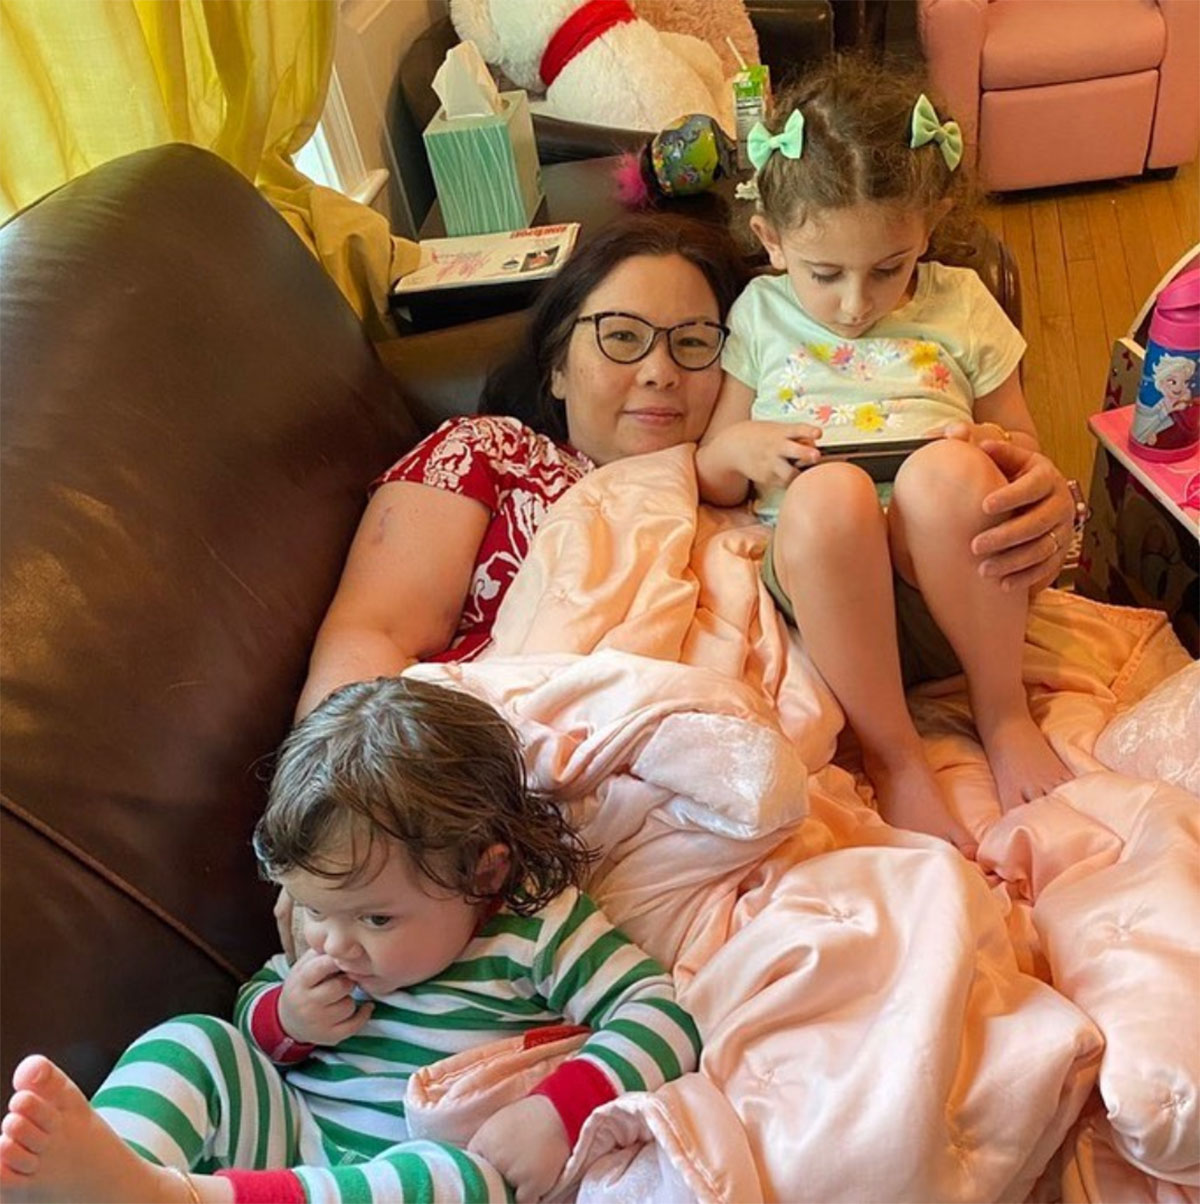 Senator Duckworth posted this picture on her Instagram feed with the caption,  Payoff for all the homeschooling, trying to work from home w/screaming babies & general chaos of quarantine .